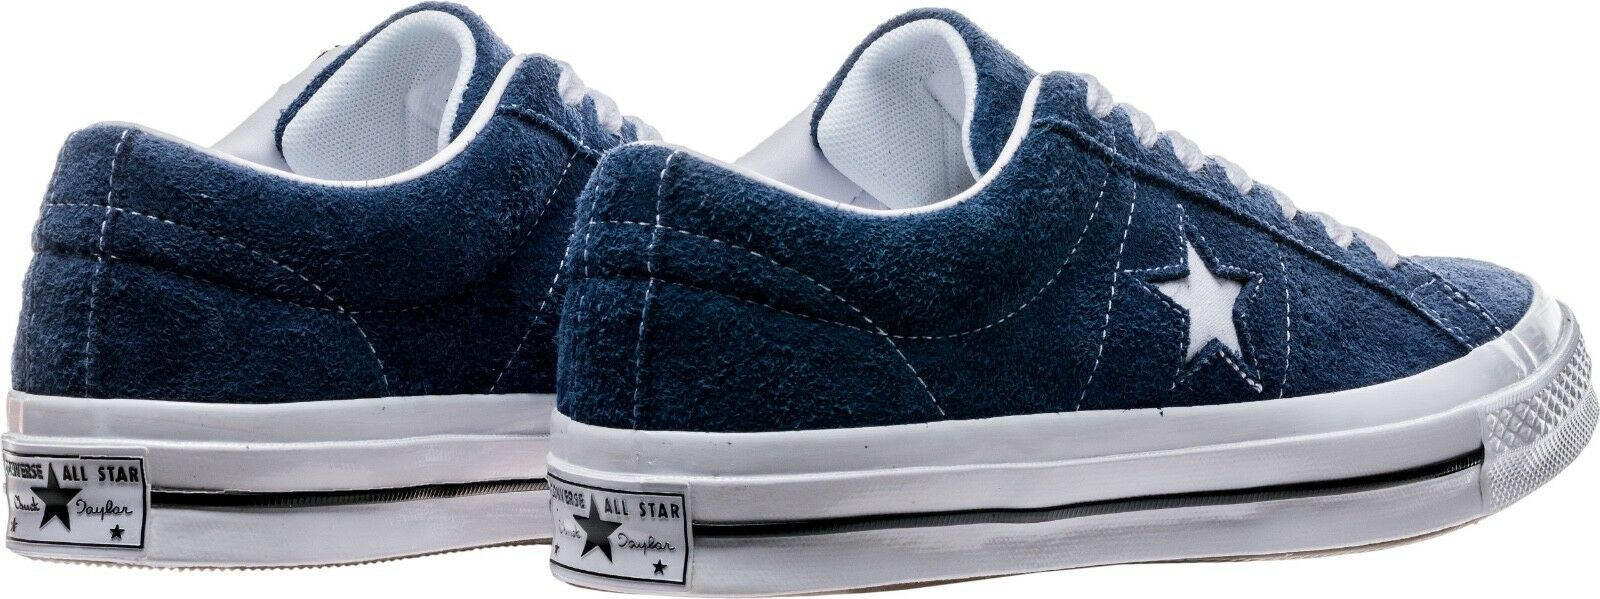 Brand New One Star OX Men's Athletic Fashion Sneakers [158371C]